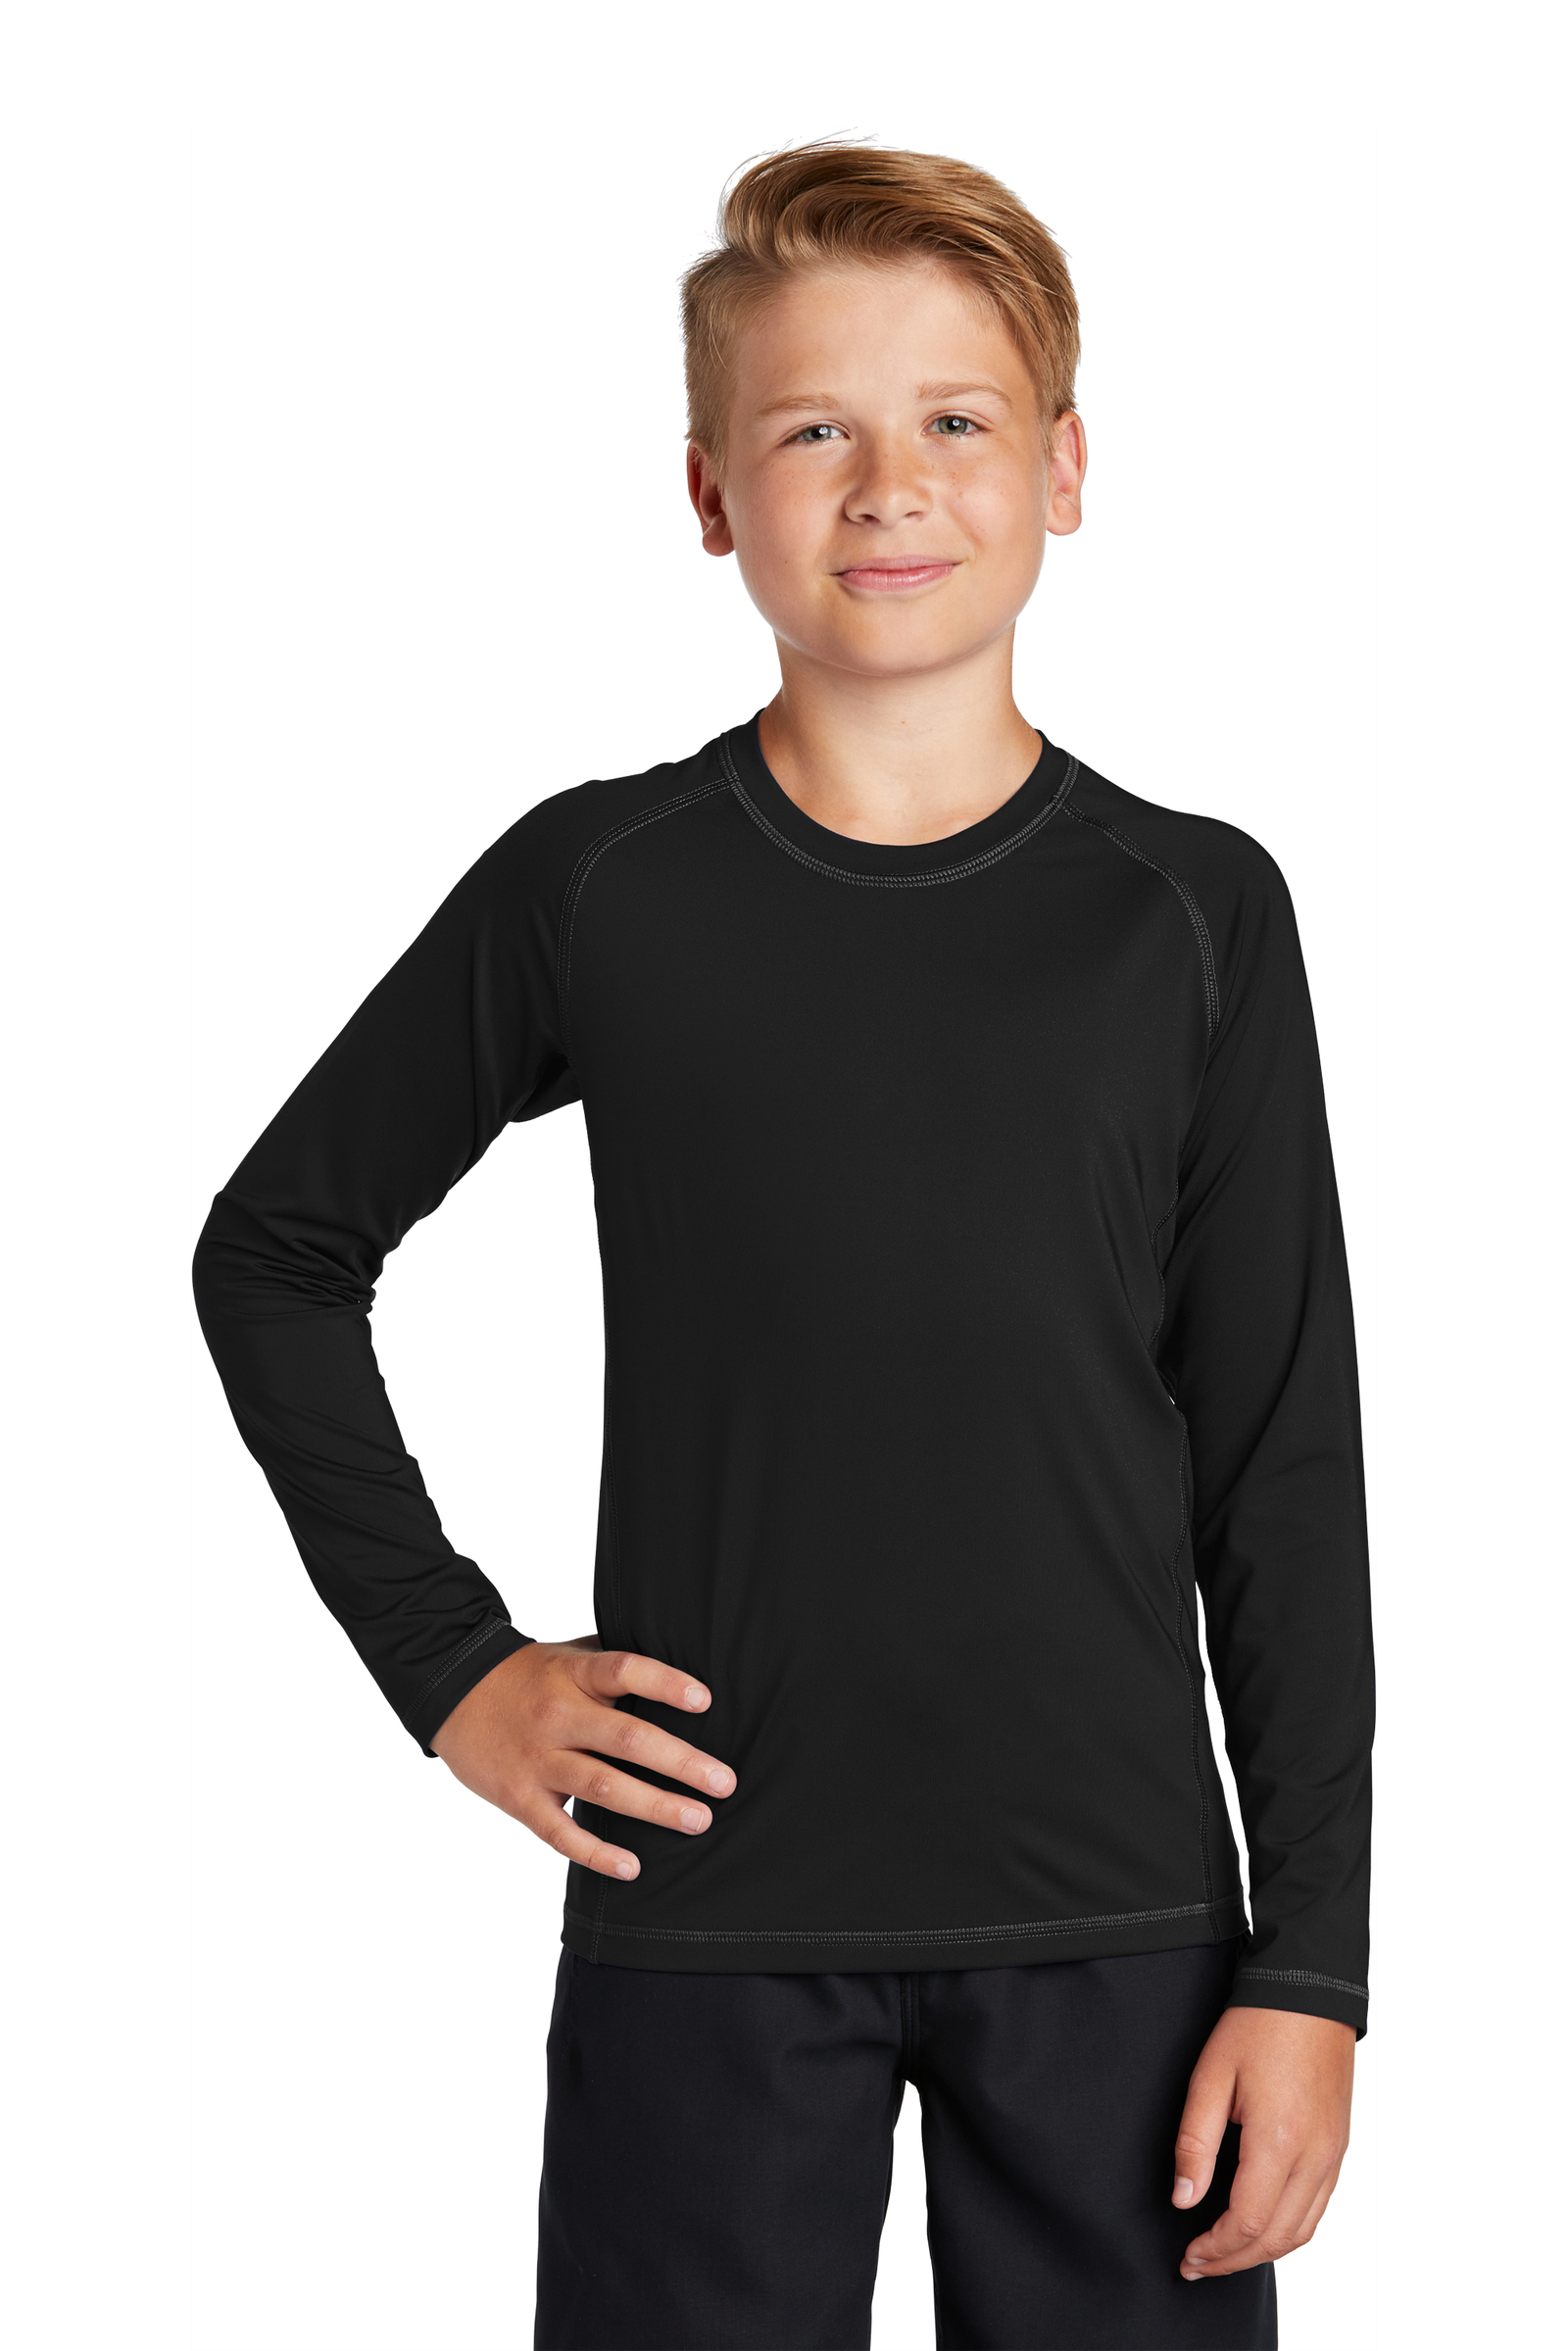 Sport-Tek Embroidered Youth Long Sleeve Rashguard Tee